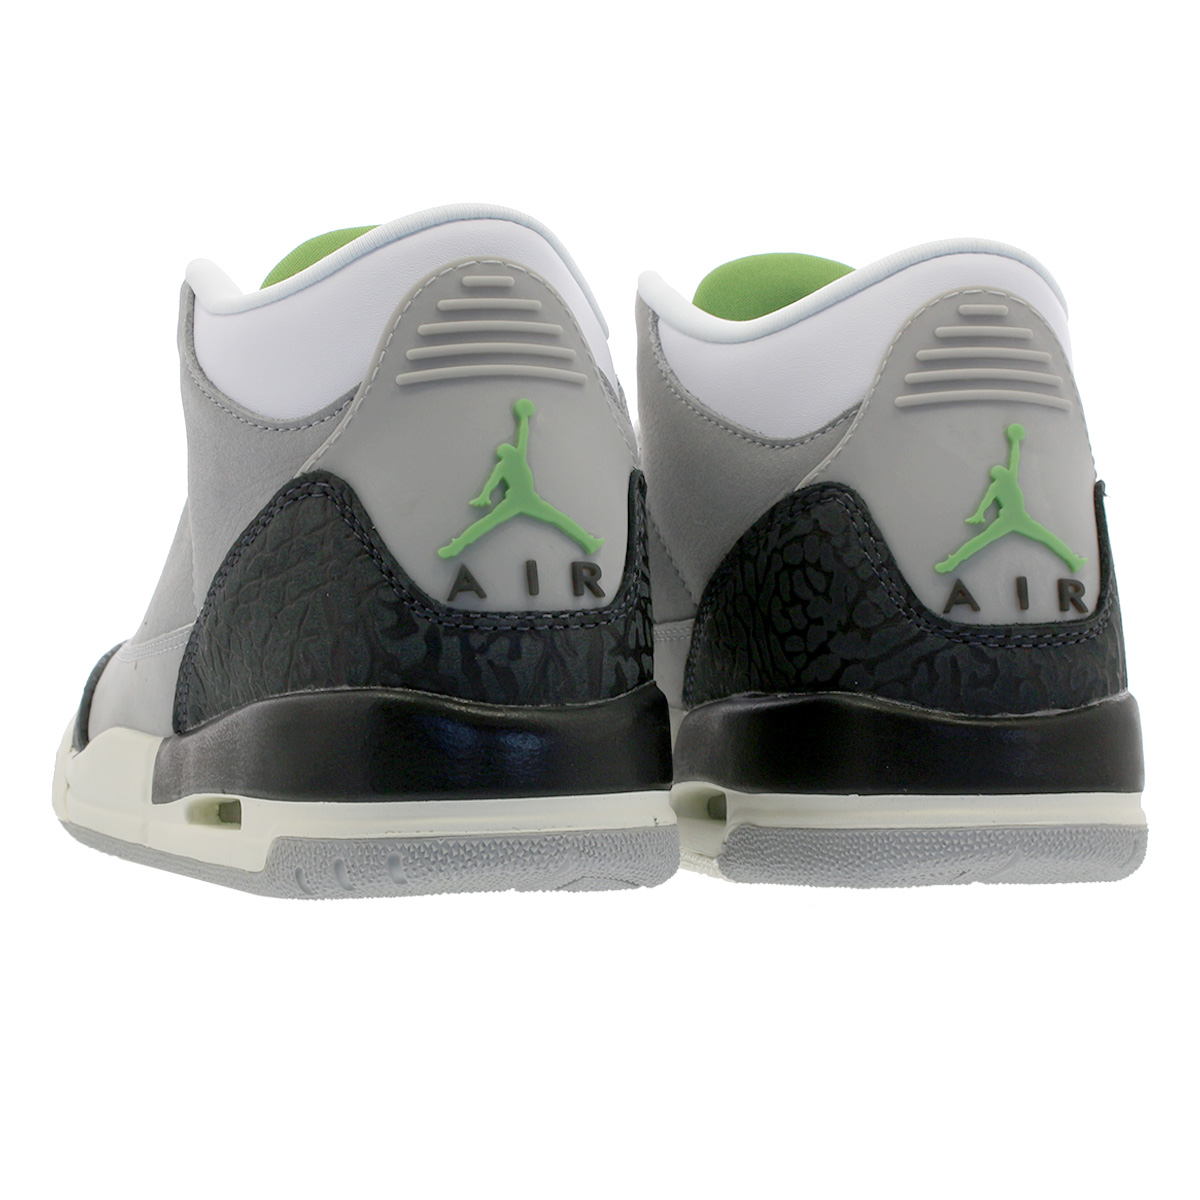 half off 114ab d59bb NIKE AIR JORDAN 3 RETRO GS Nike air Jordan 3 nostalgic GS LIGHT SMOKE GREY  CHLOROPHYLL BLACK WHITE 398,614-006